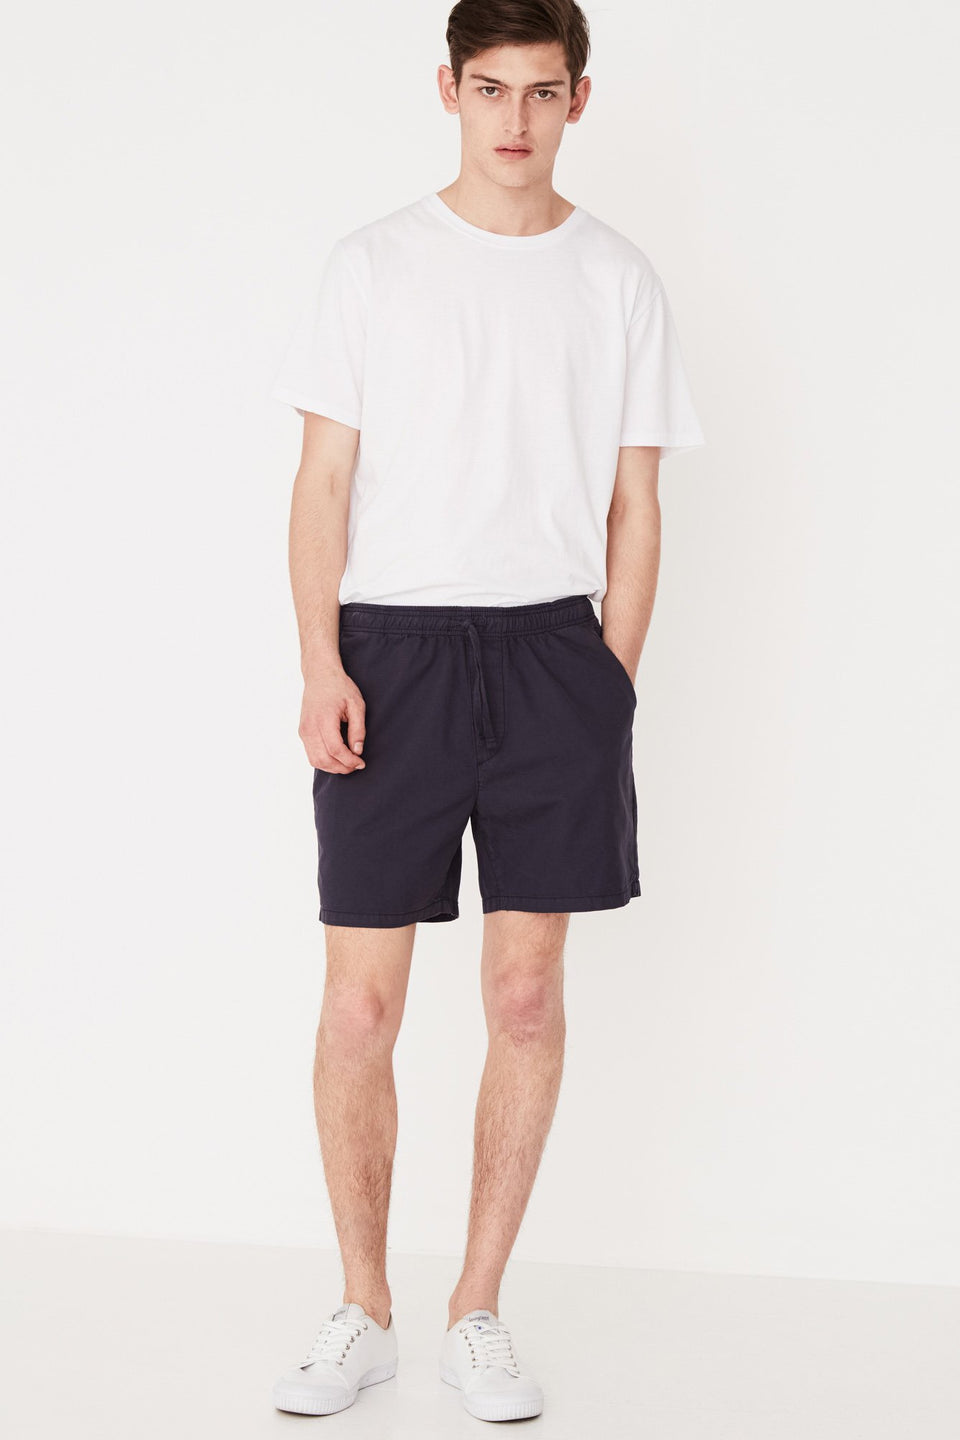 Cotton Walkshort - Worn Navy